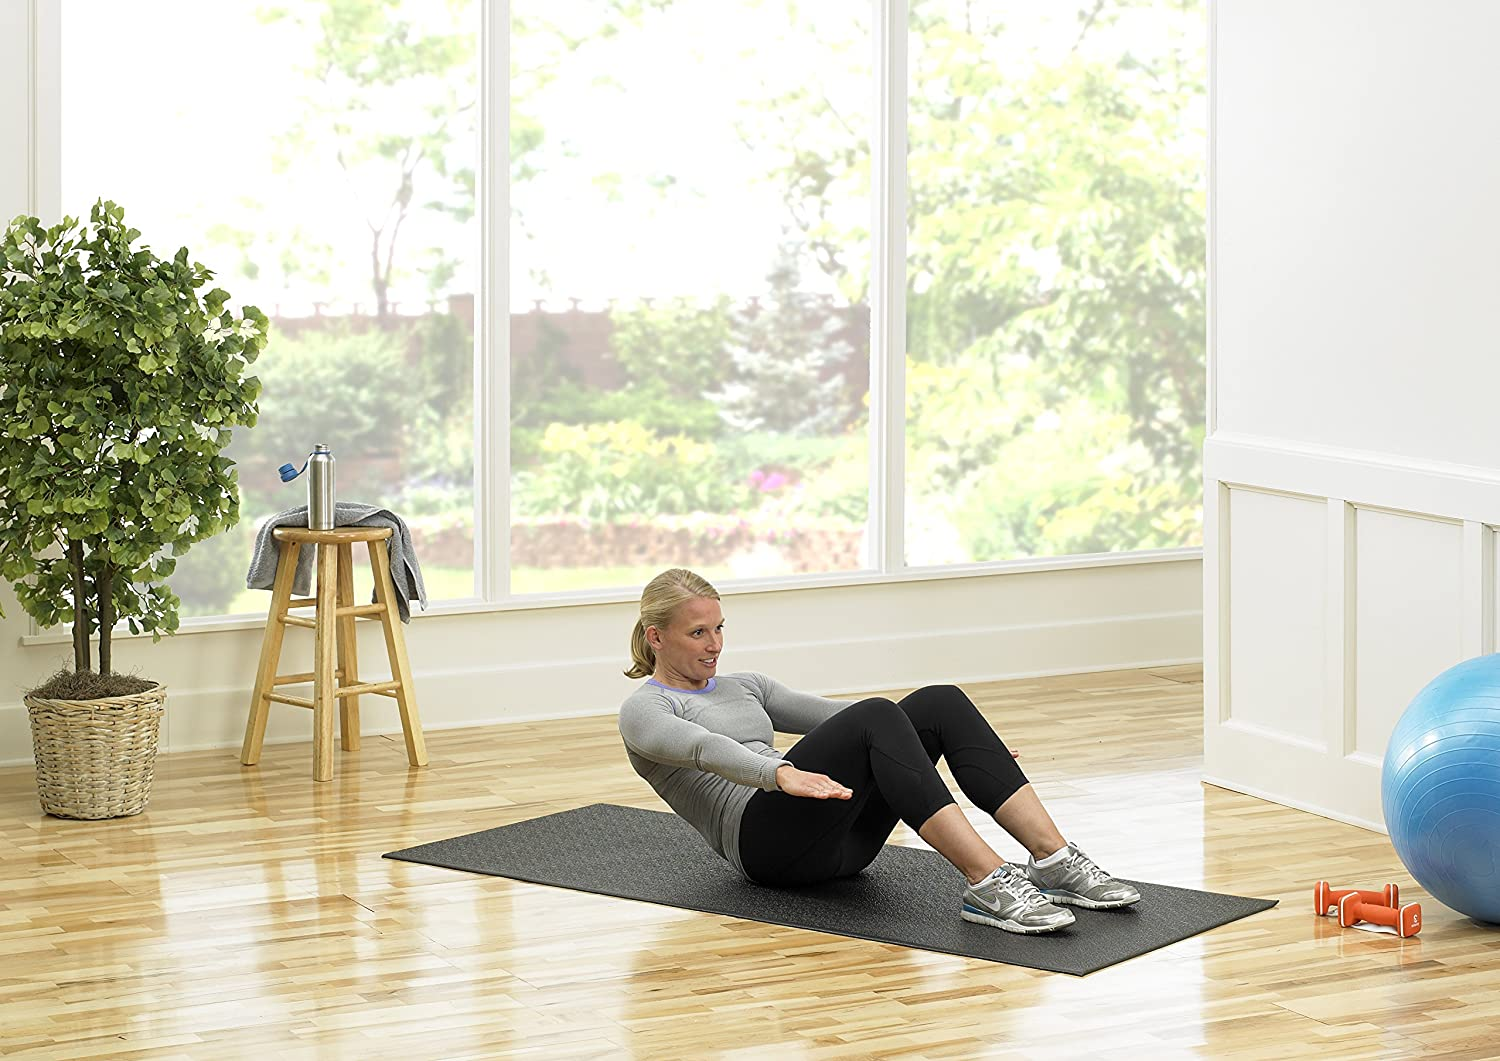 2.5 Feet x 5 Feet 30-Inch x 60-Inch for Indoor Cycles Recumbent Bikes Upright Exercise Bikes and Steppers SuperMats Heavy Duty Equipment Mat 13GS Made in U.S.A